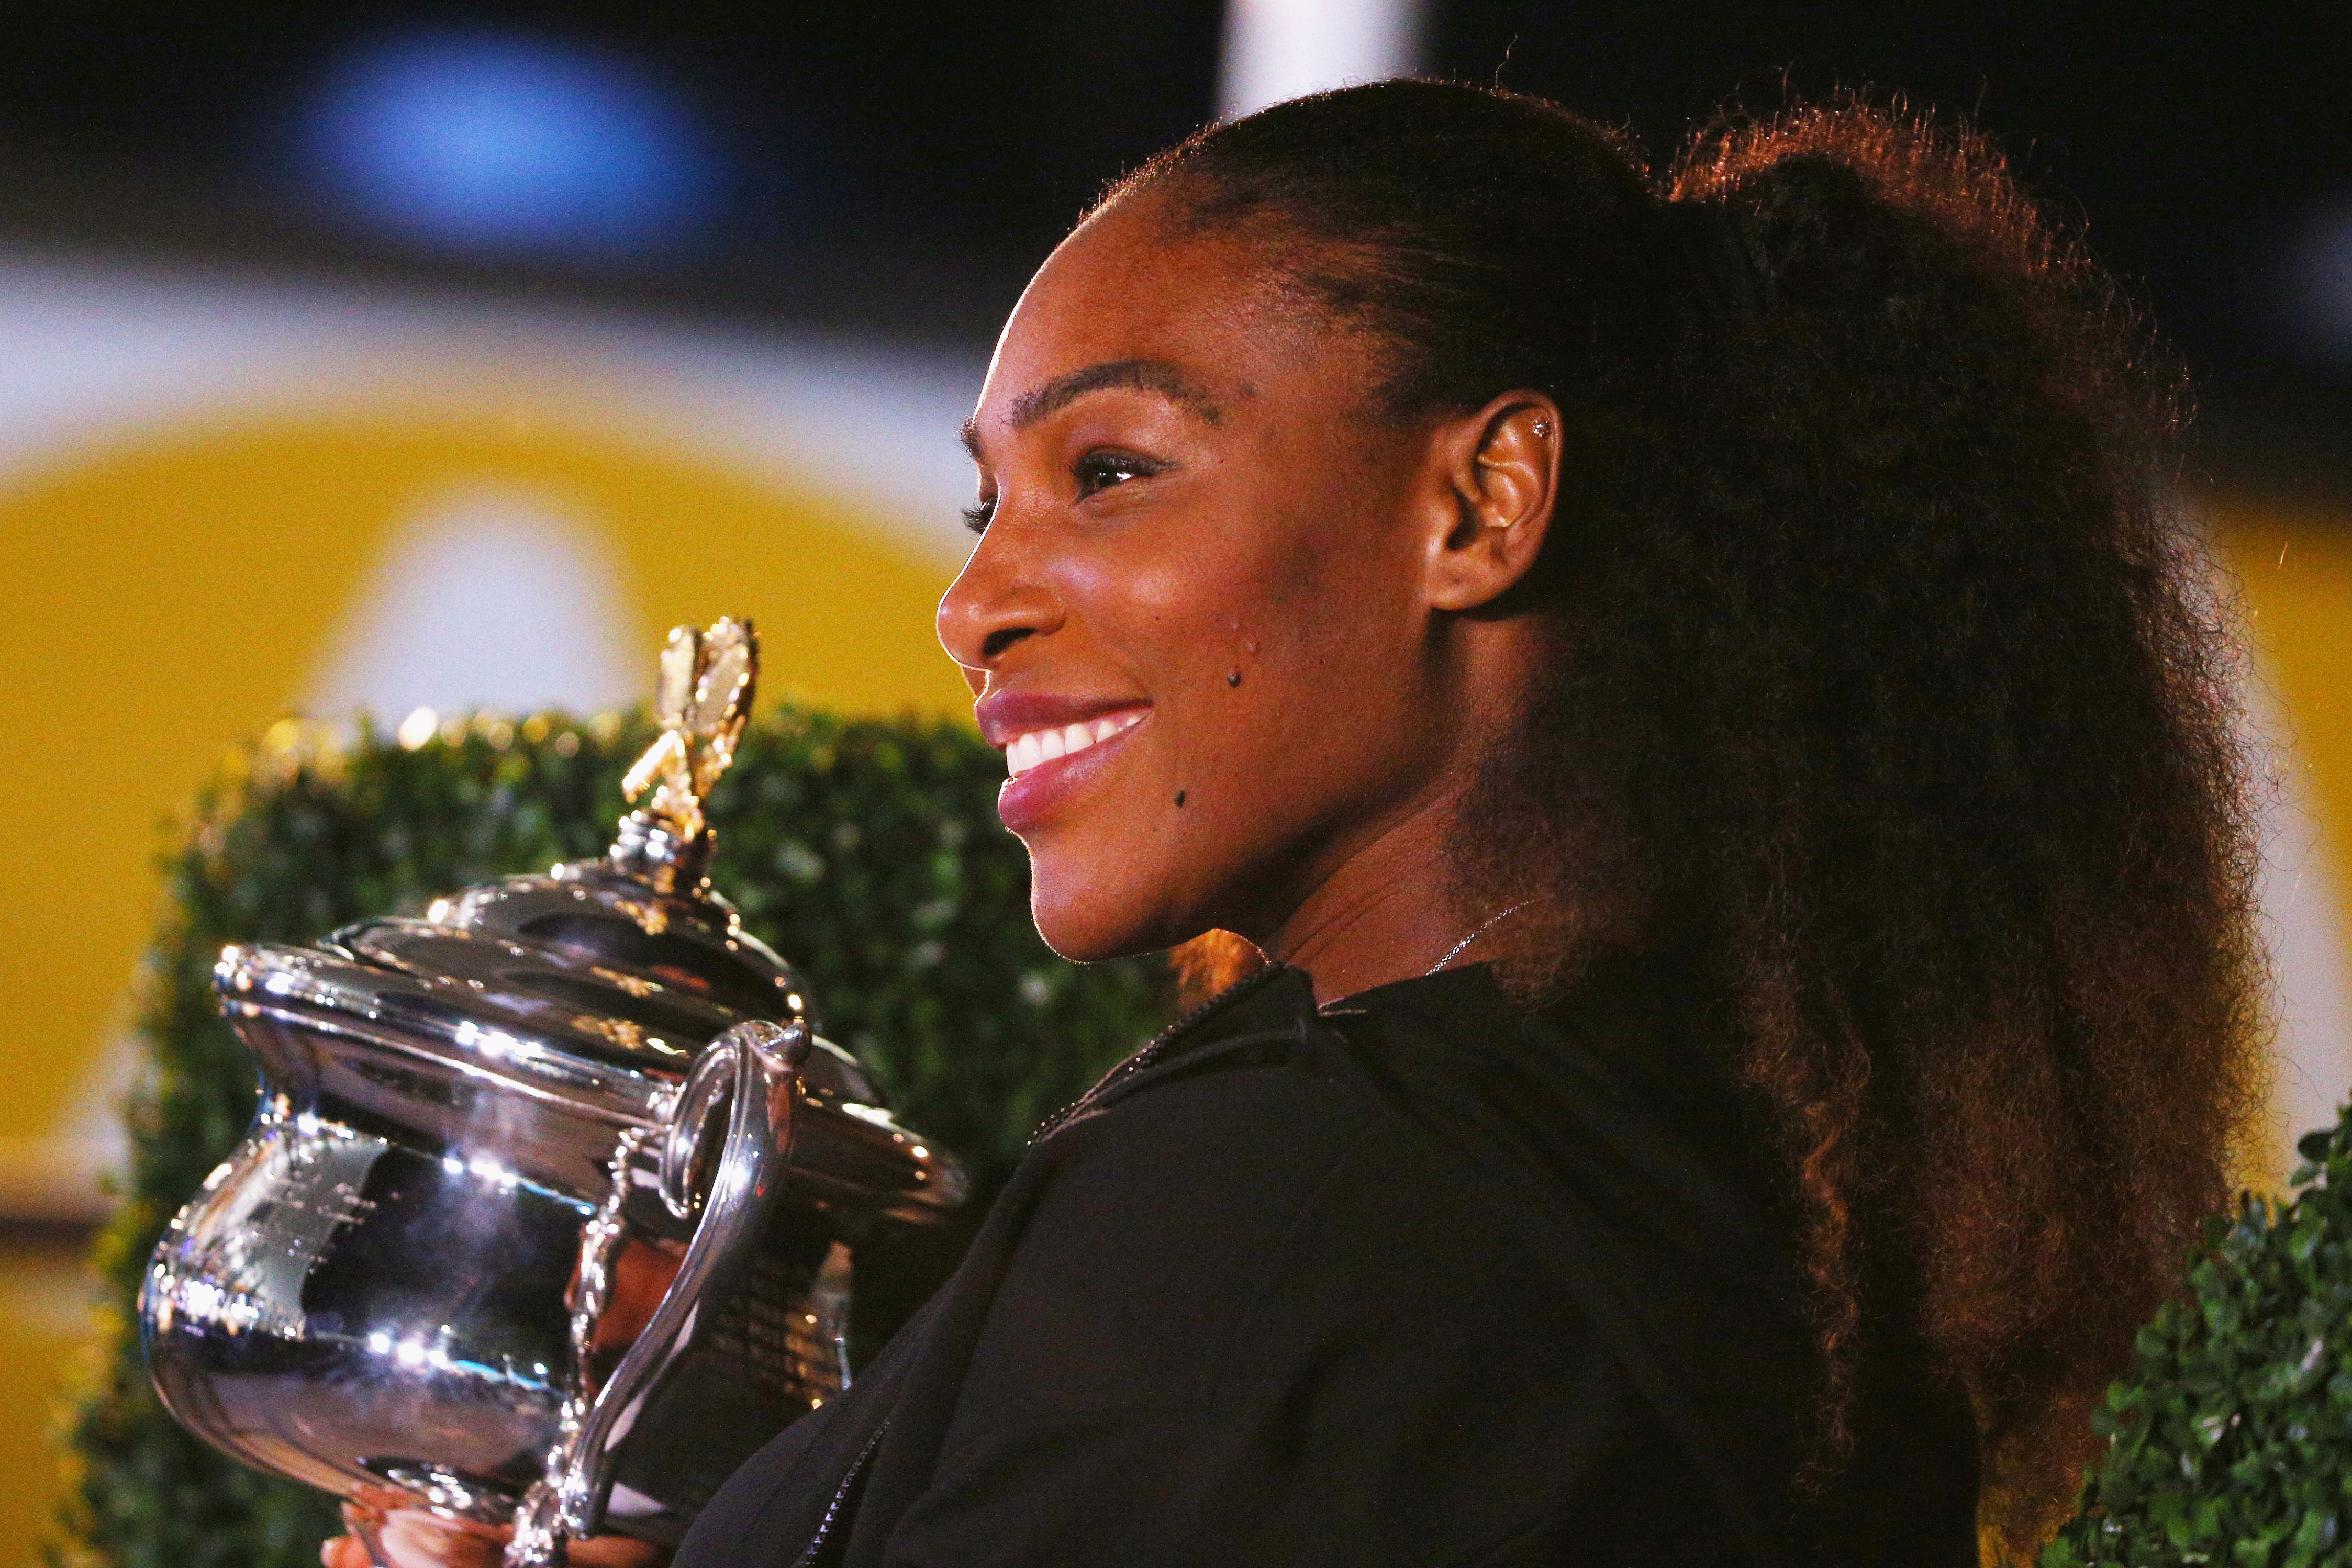 Despite decades of racist and sexist attacks, Serena Williams keeps winning